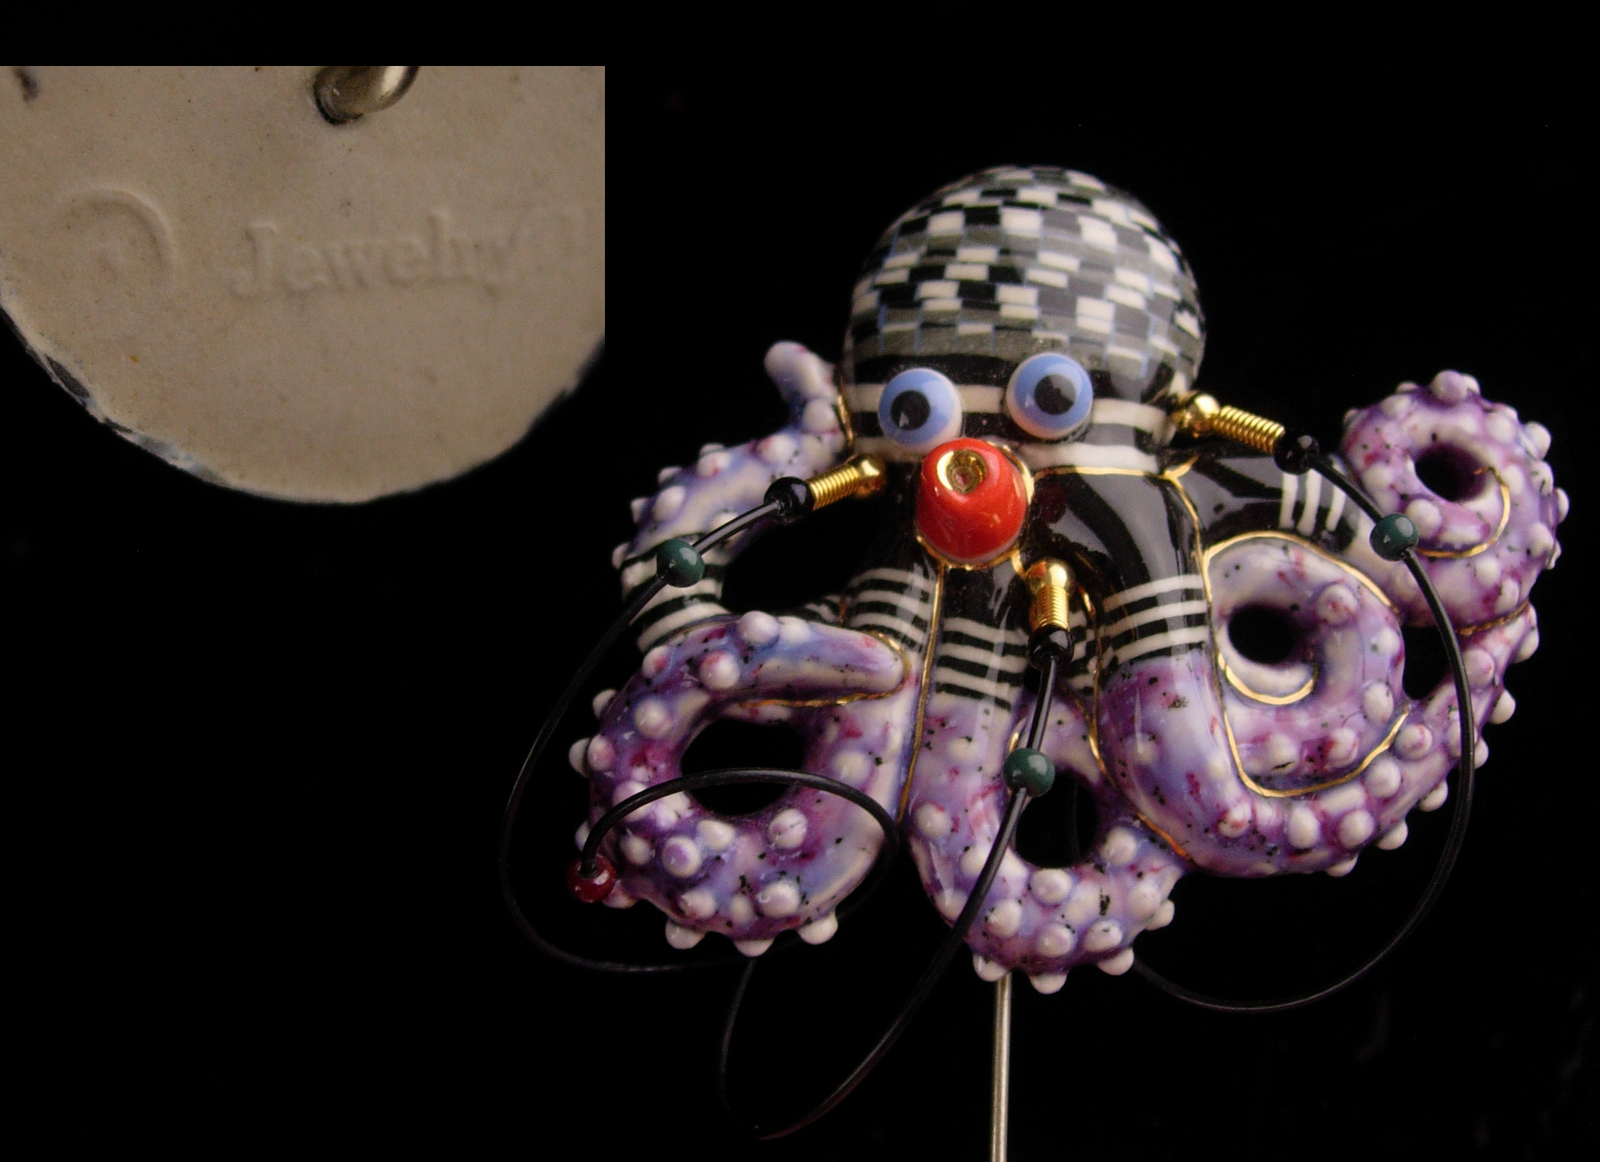 Rare Couture Octopus stickpin - CYNTHIA CHUANG - porcelain handcrafted lapel pin